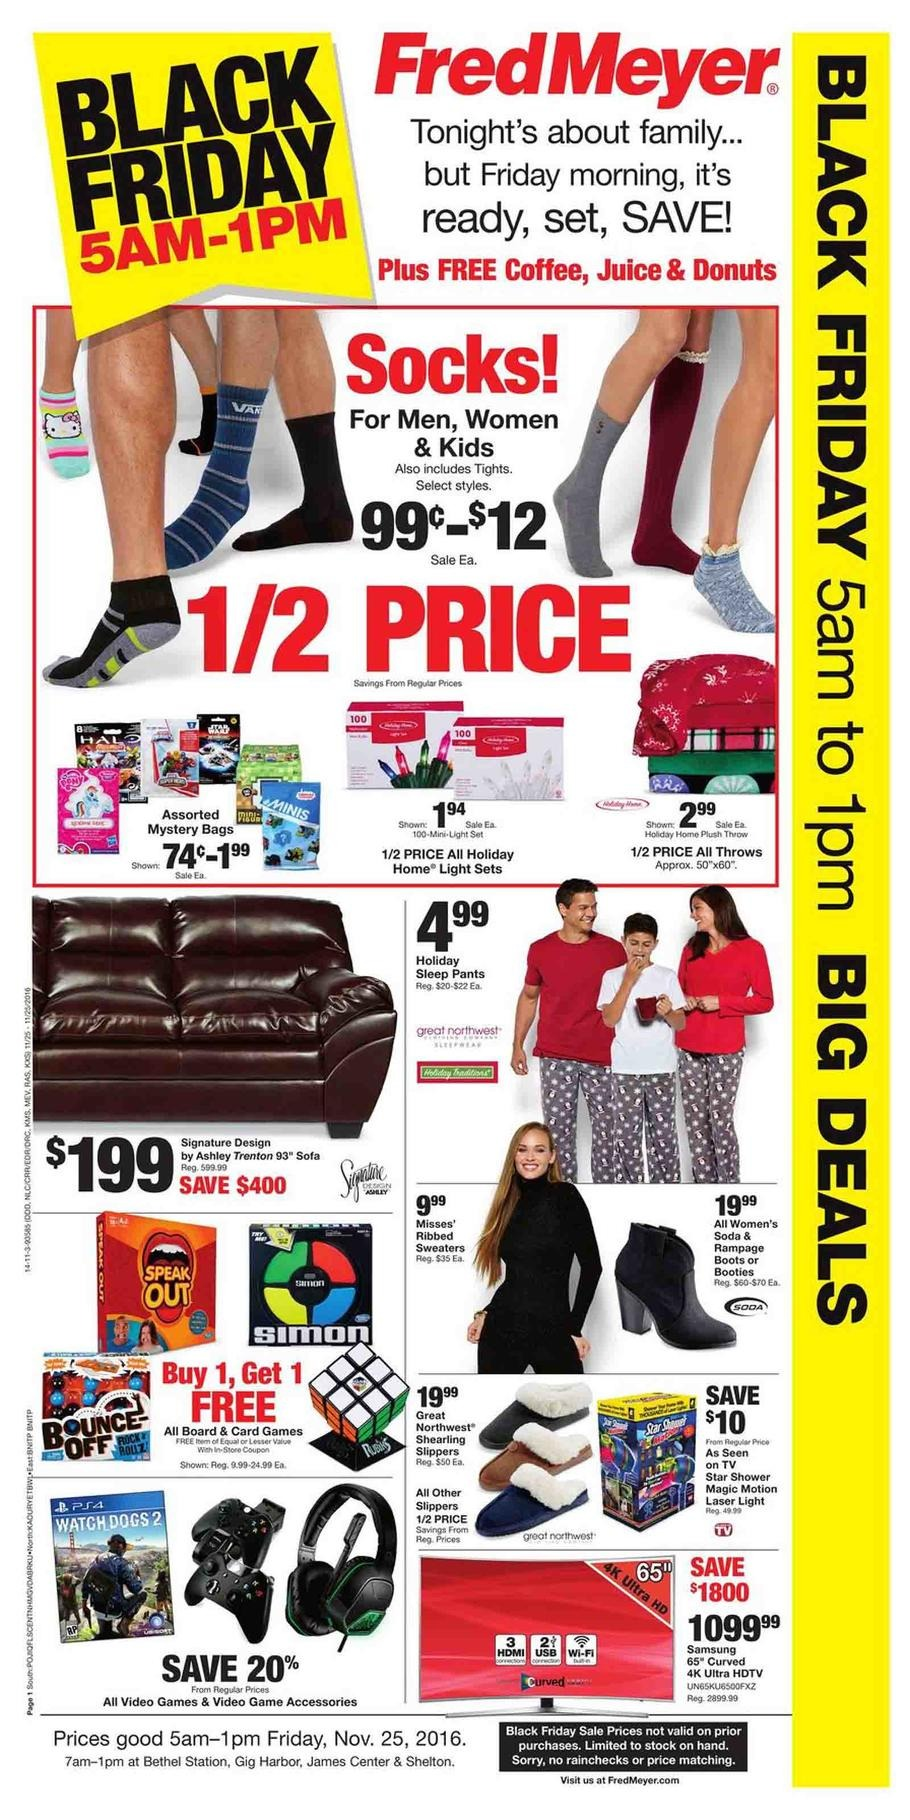 1f49d78758 Fred Meyer 2016 Black Friday Ad - Black Friday Archive - Black Friday Ads  from the Past